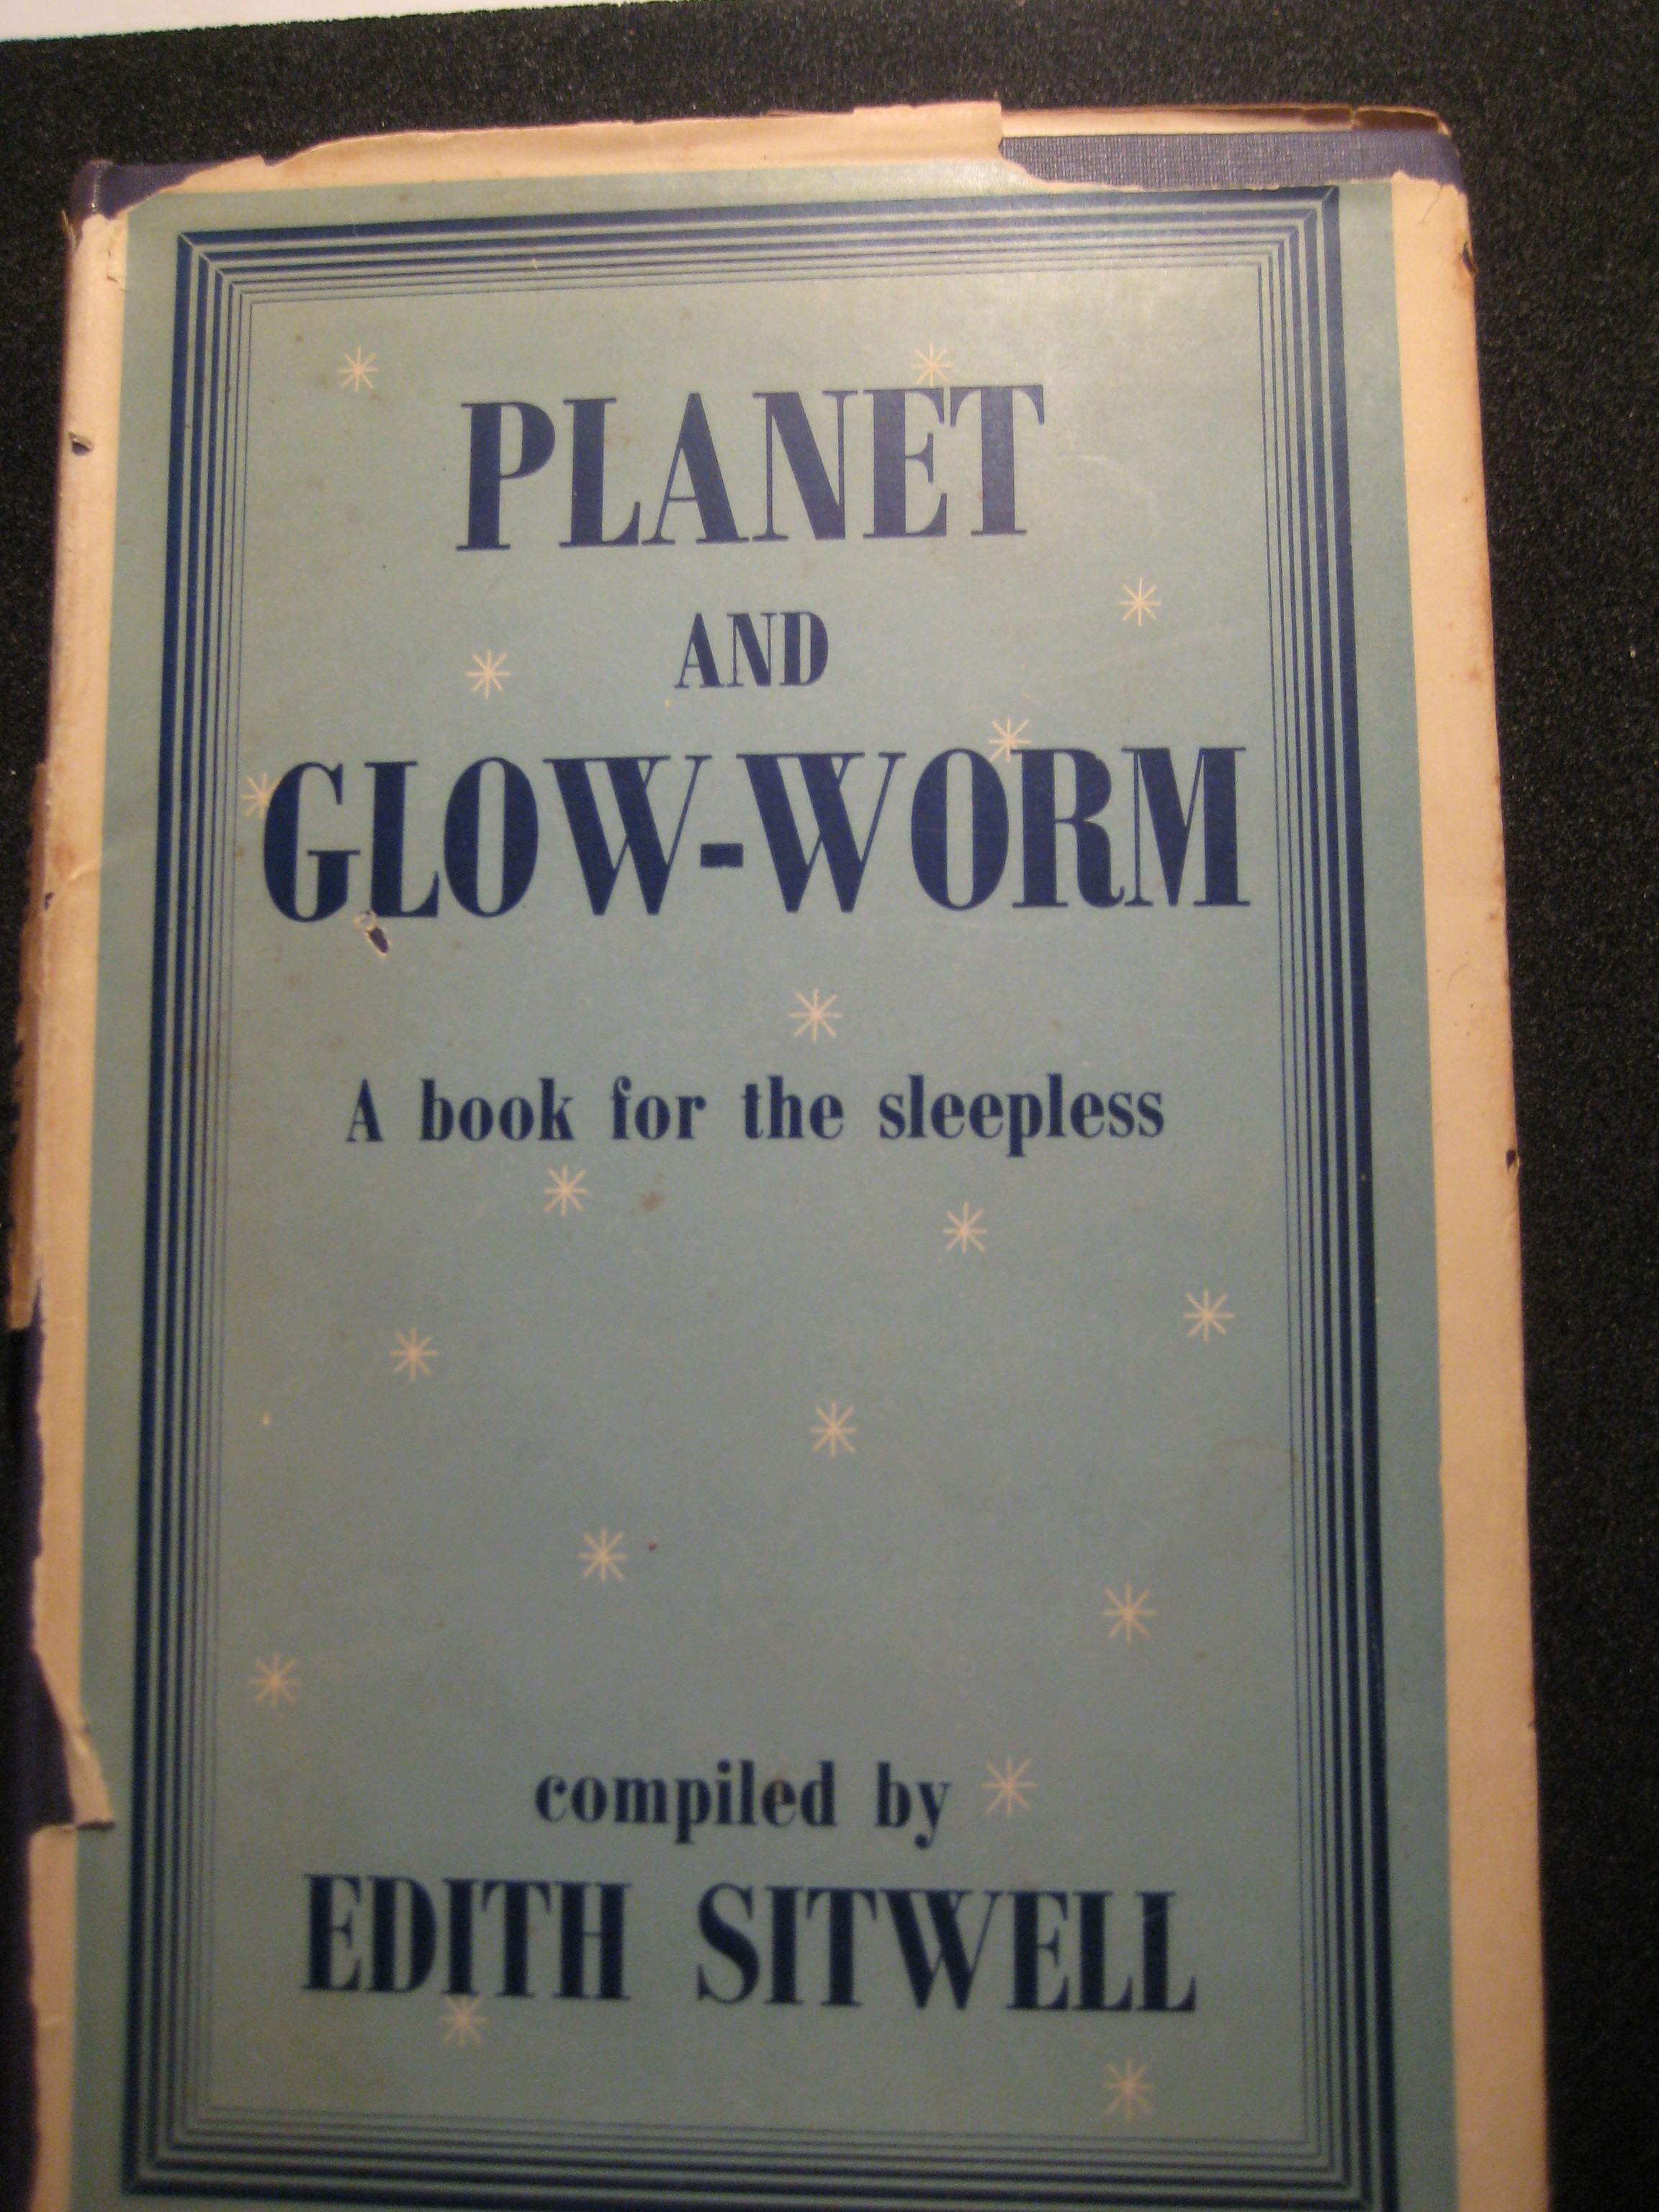 Planet and glow-worm